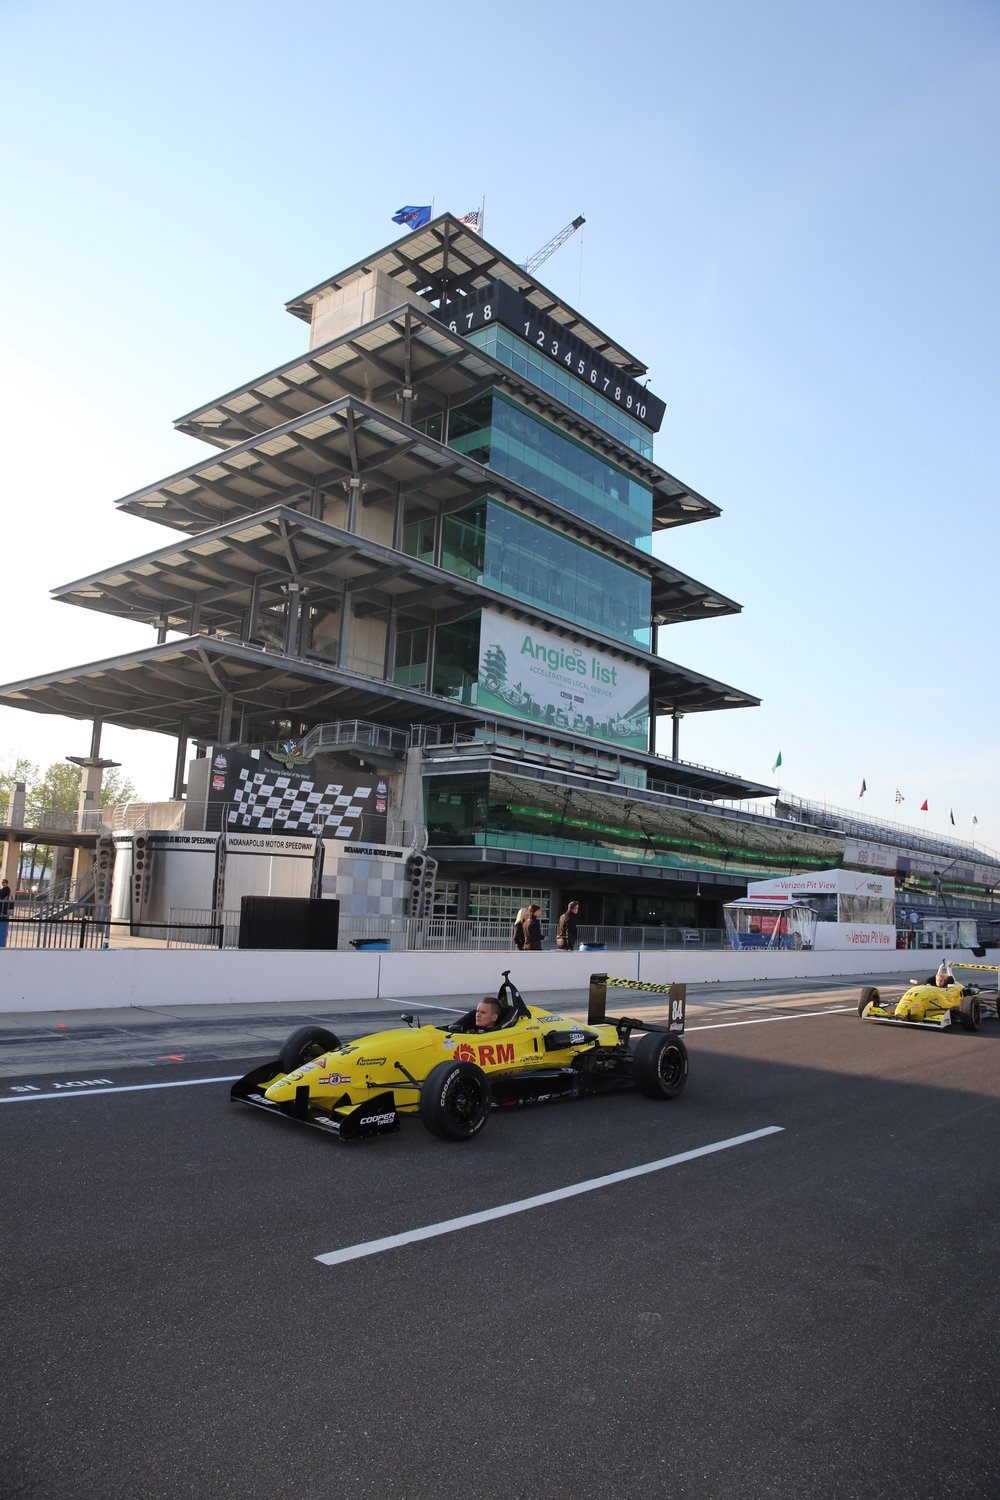 The Pagoda at the Indianapolis Motor Speedway